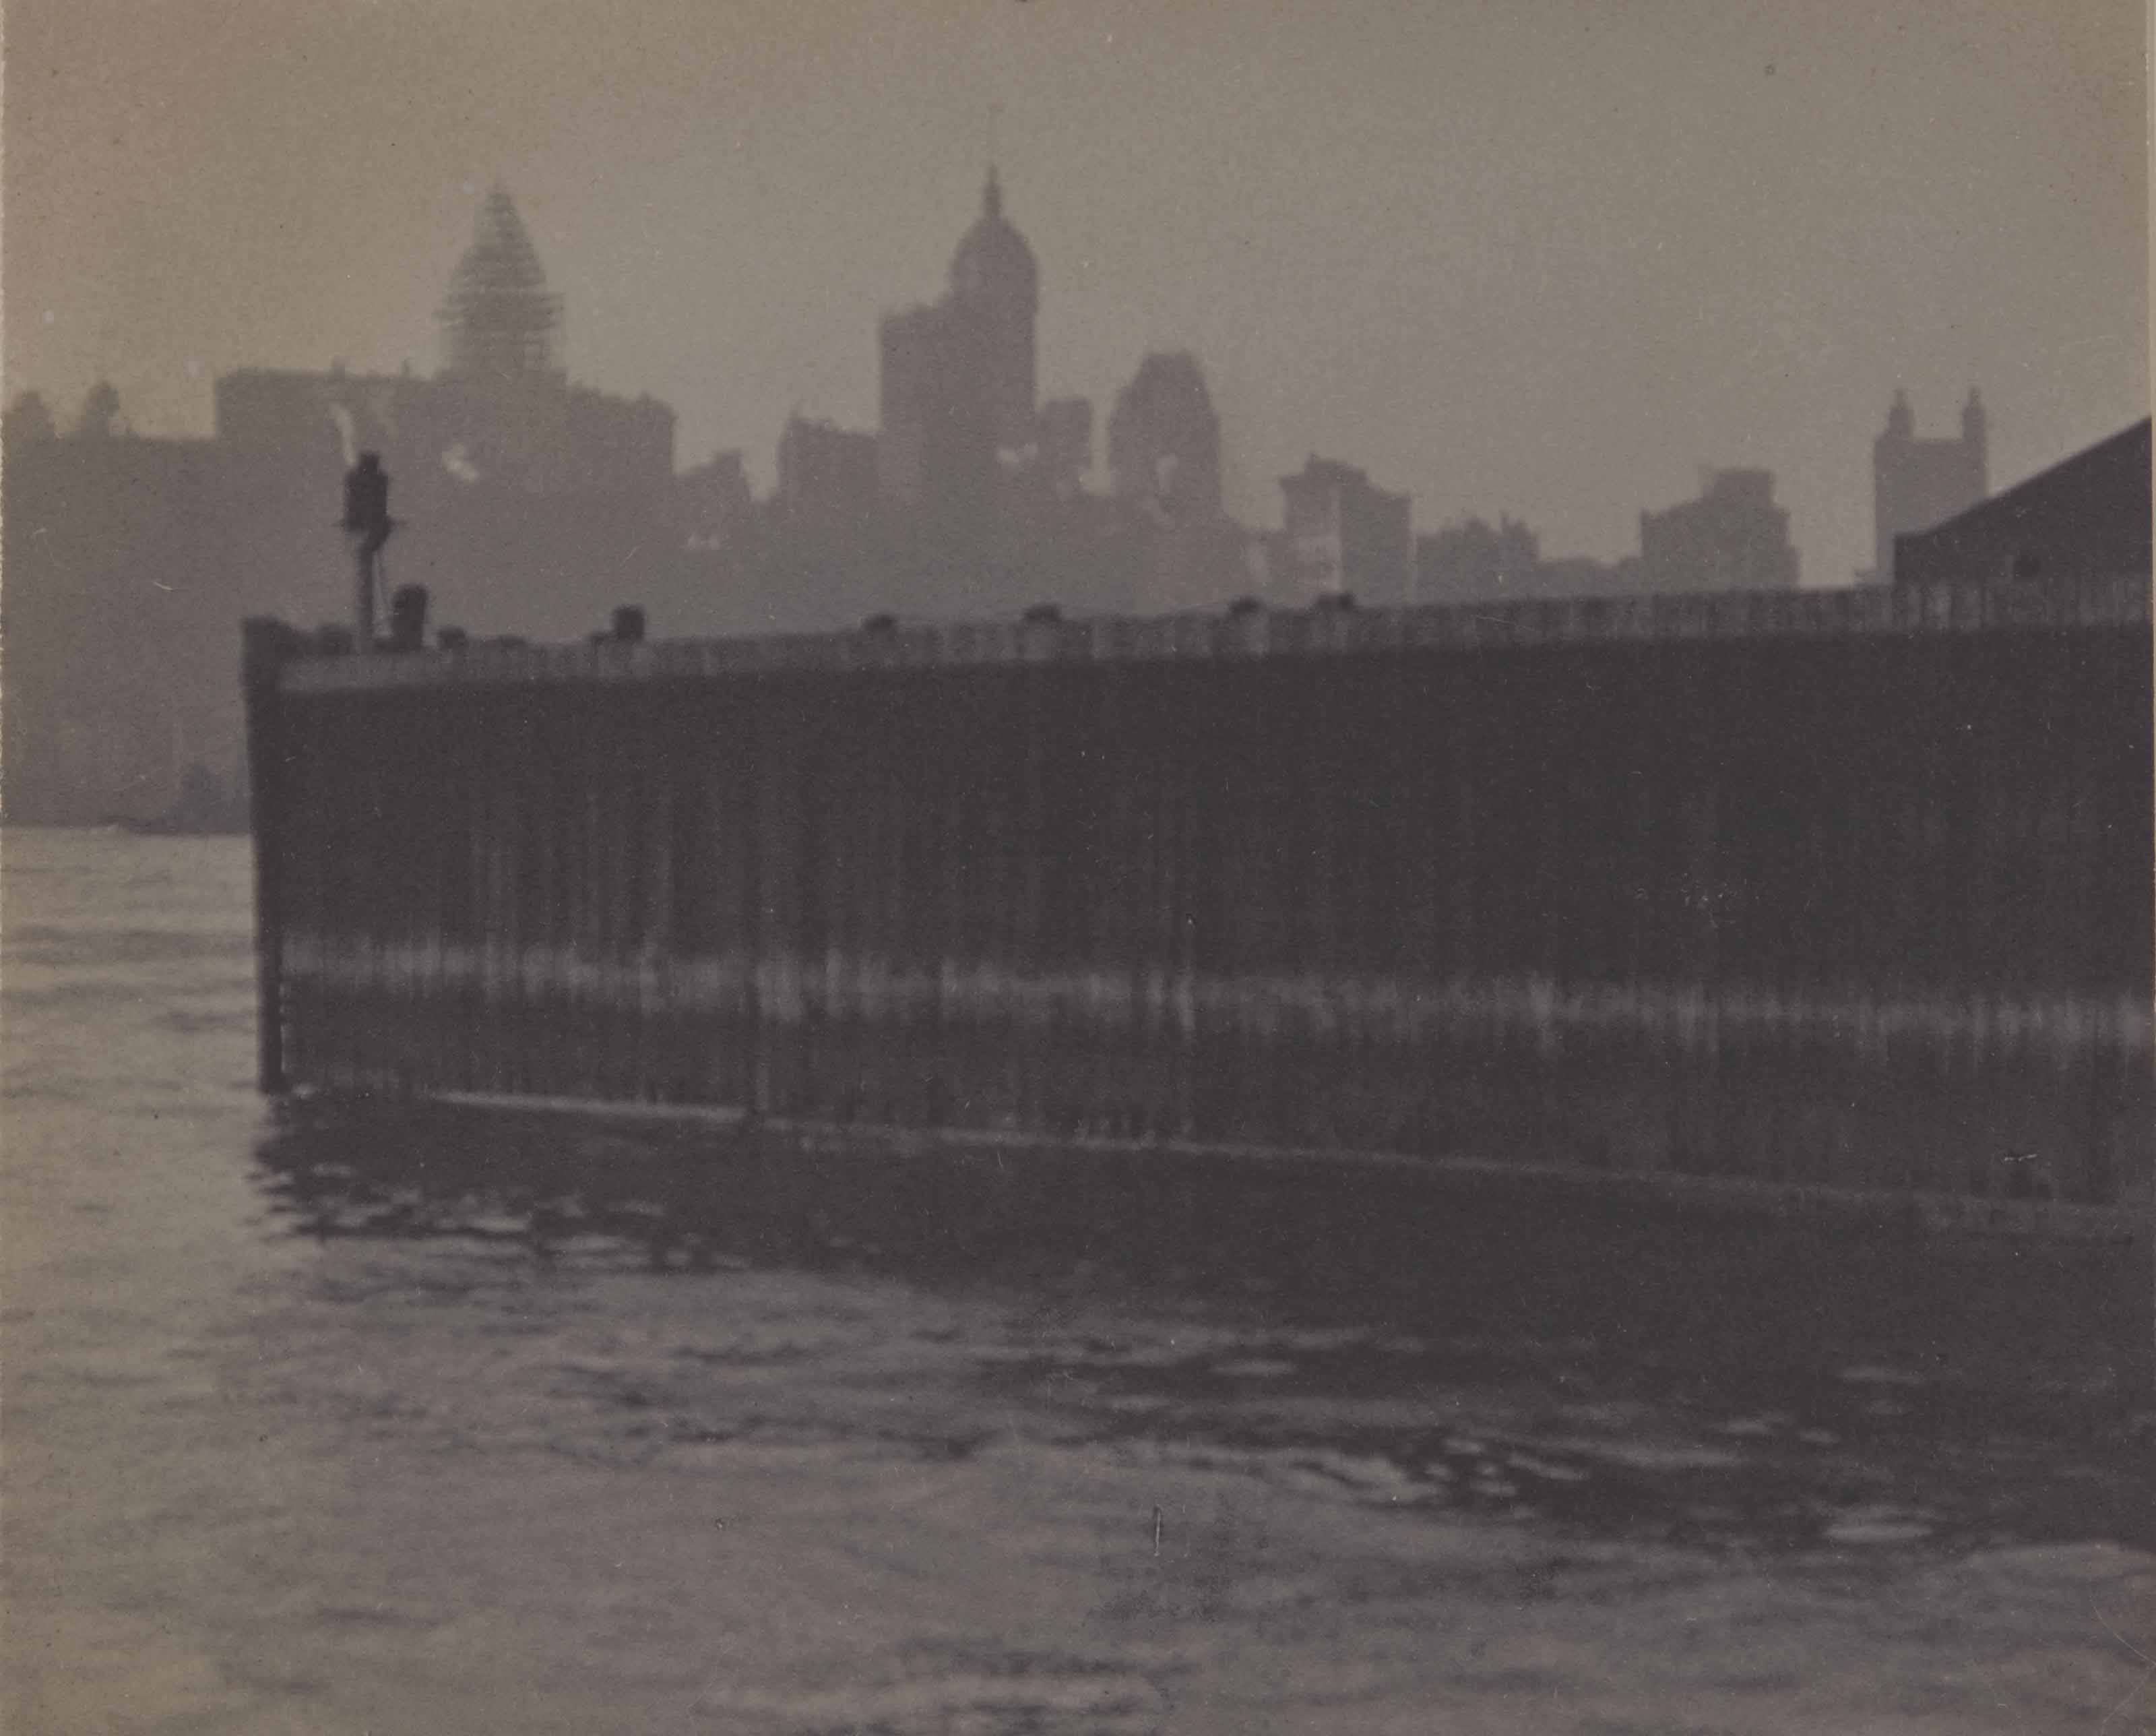 New York Harbour, 1911